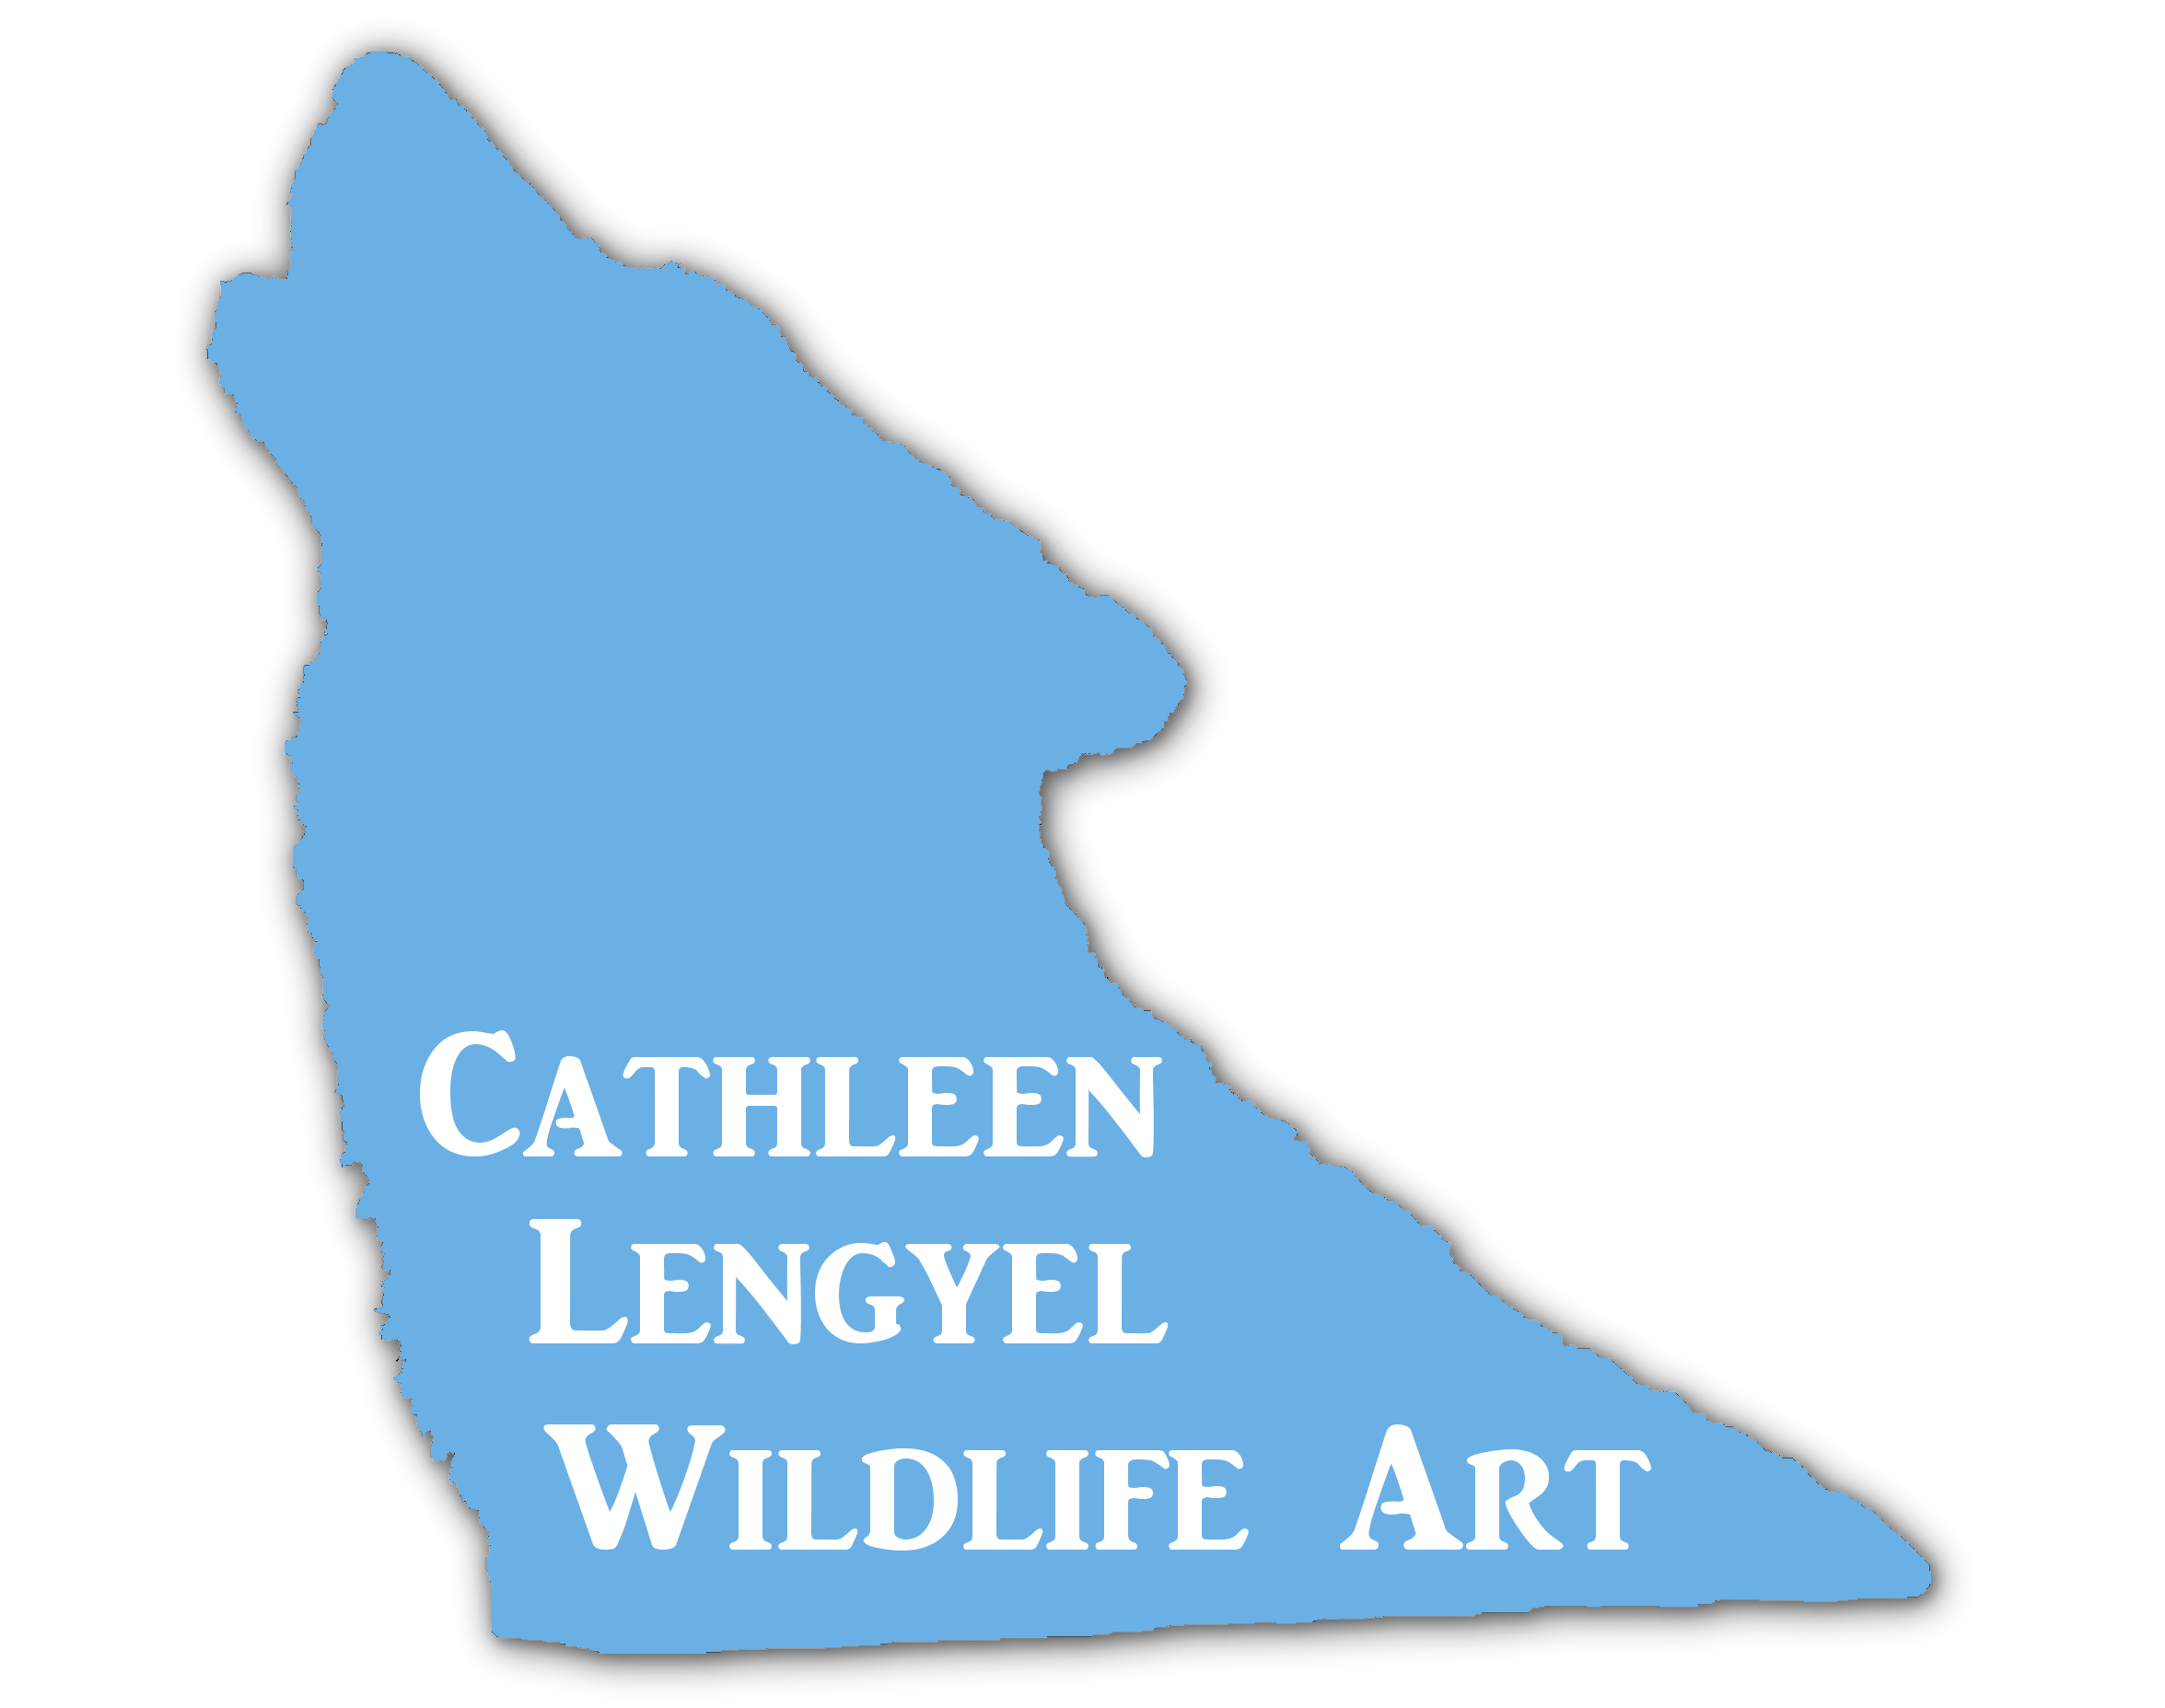 Cathleen Lengyel Wildlife Art Shop